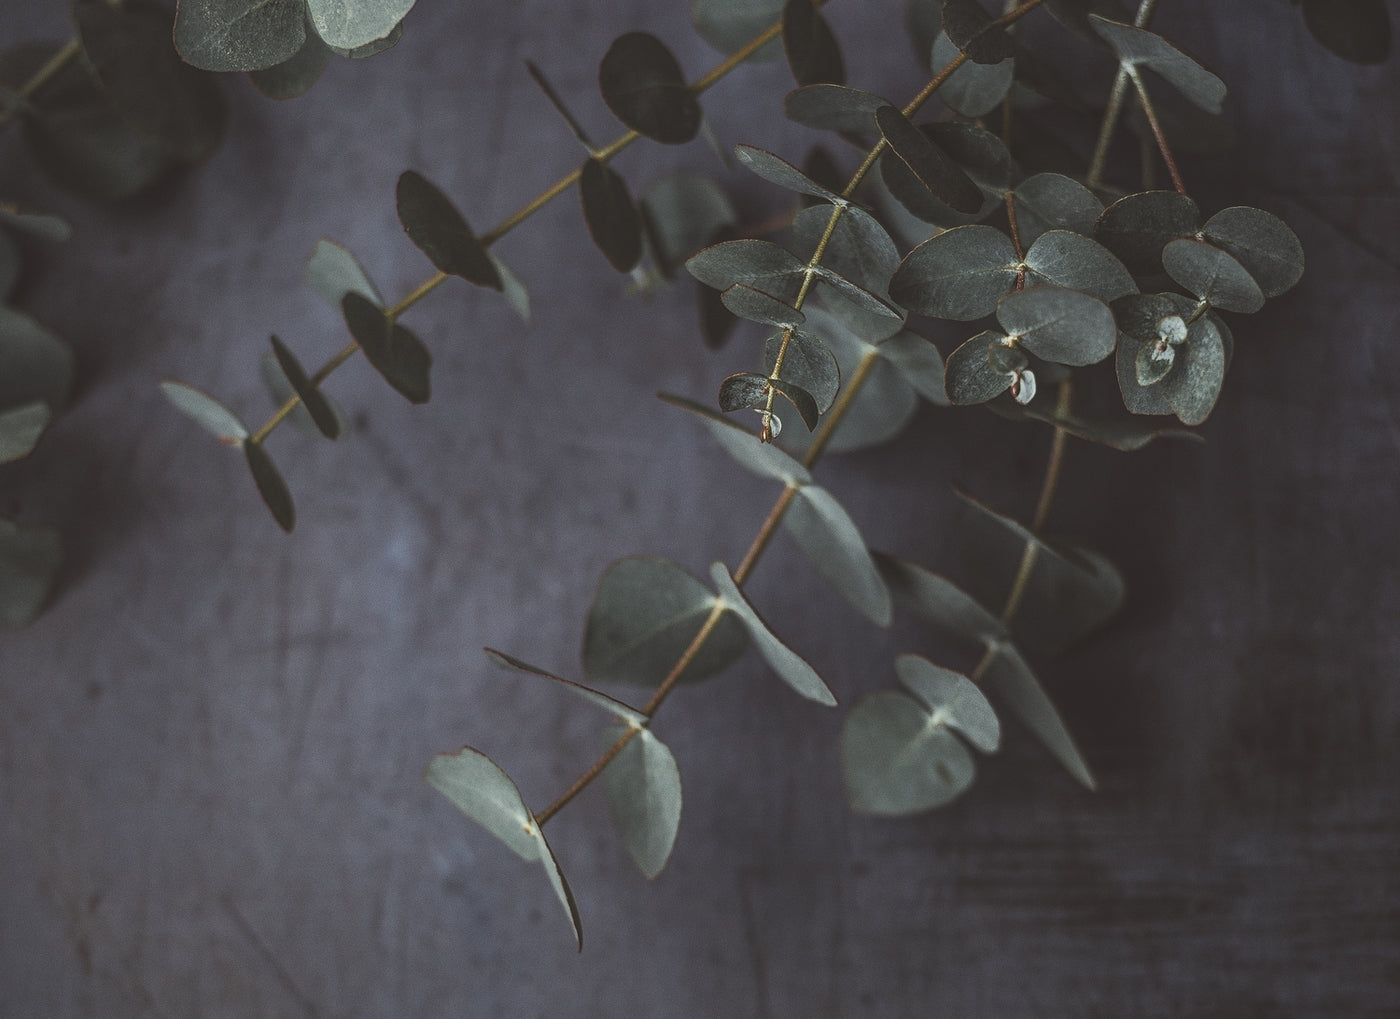 Scents to fall asleep to: Eucalyptus